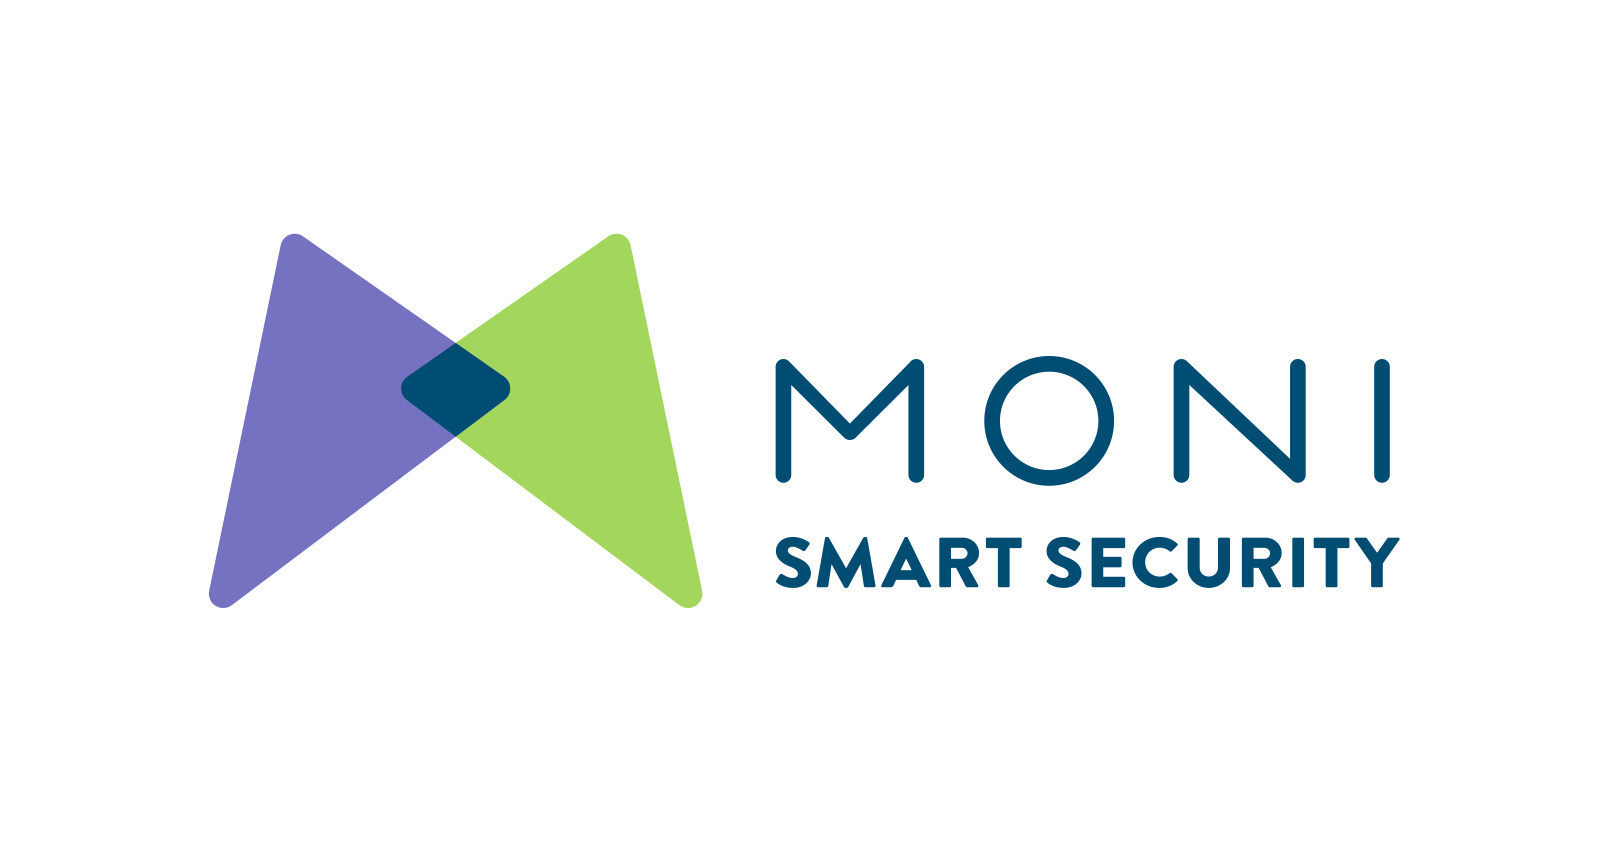 Moni Smart Security Introduces Customer Bill Of Rights